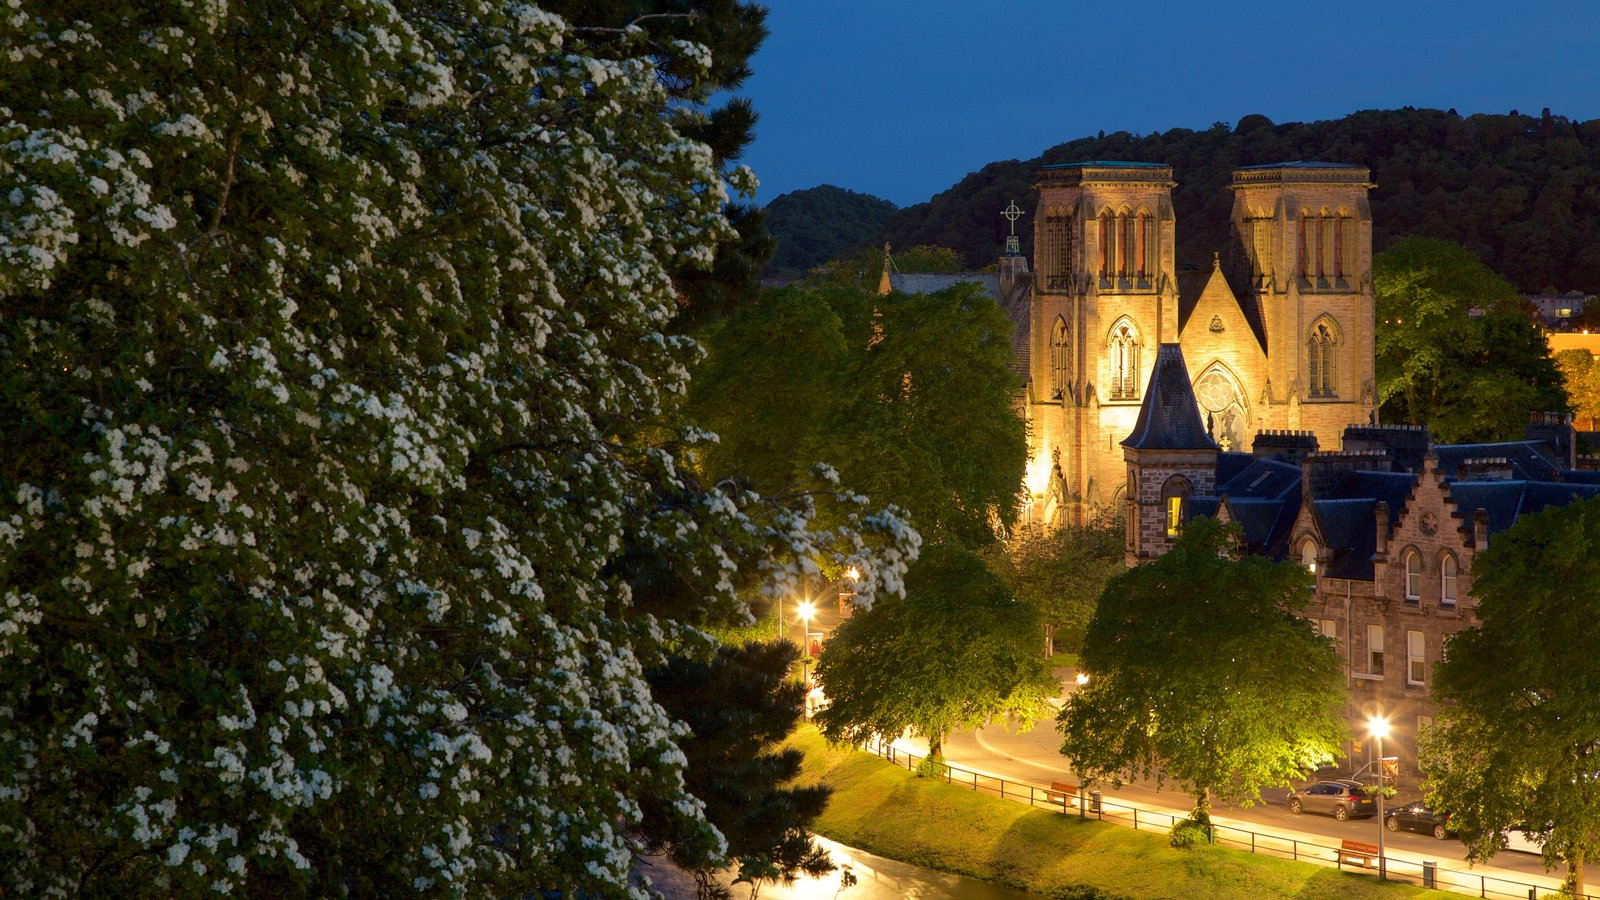 Inverness Cathedral showing heritage elements, night scenes and heritage architecture